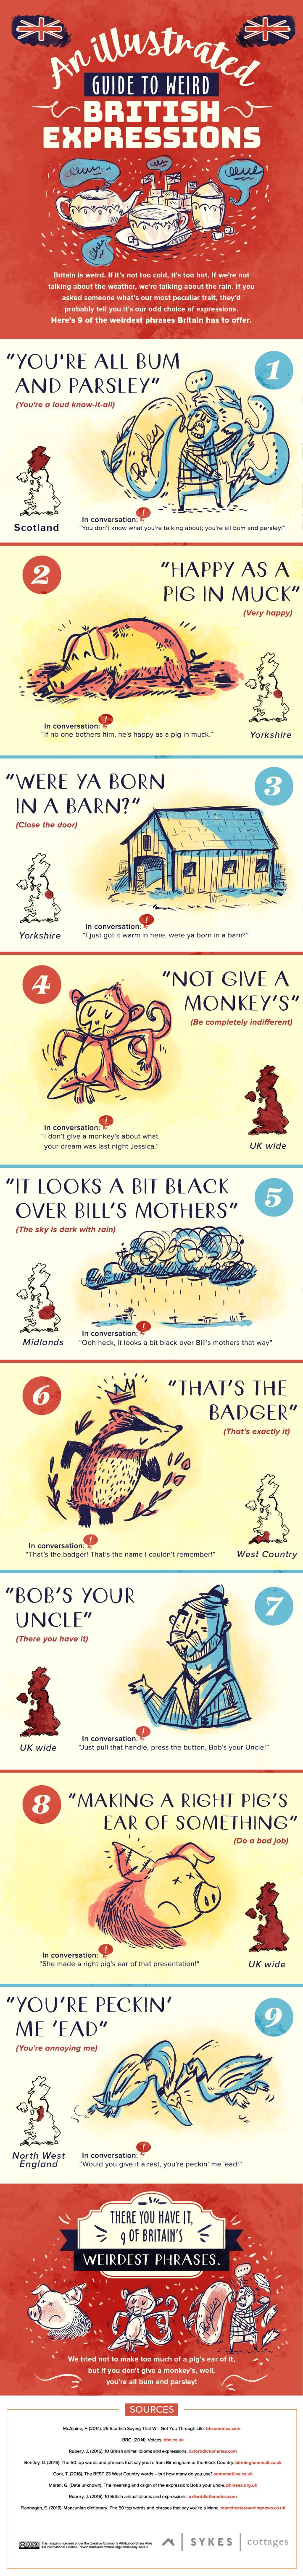 Best British Phrases Ideas On Pinterest American English - The 12 strangest sayings in america